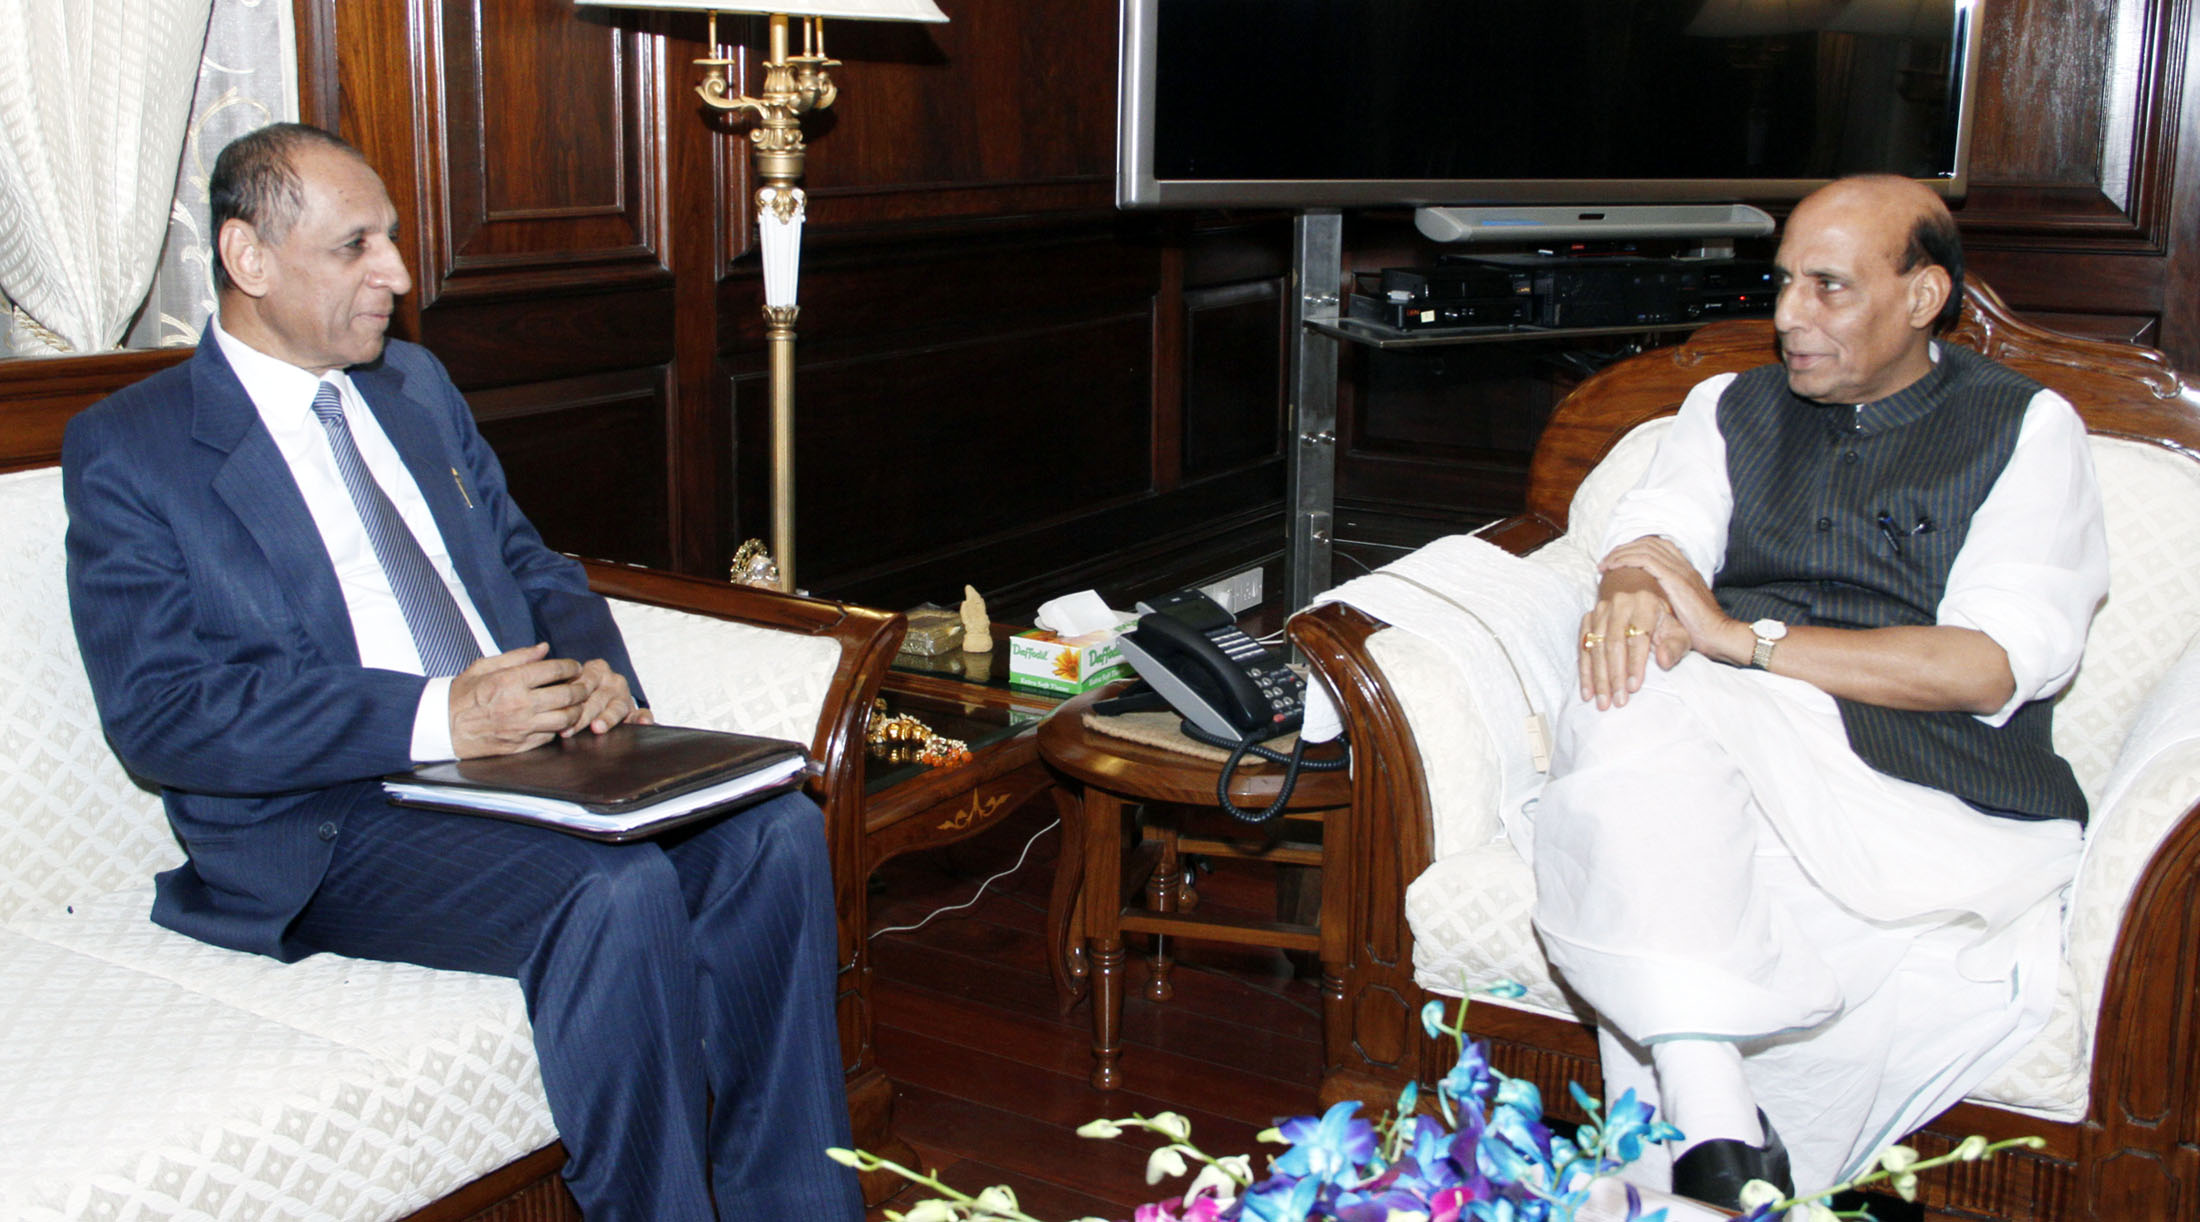 The Governor of Andhra Pradesh and Telangana, Shri E.S.L. Narasimhan calling on the Union Home Minister, Shri Rajnath Singh, in New Delhi on August 20, 2015.